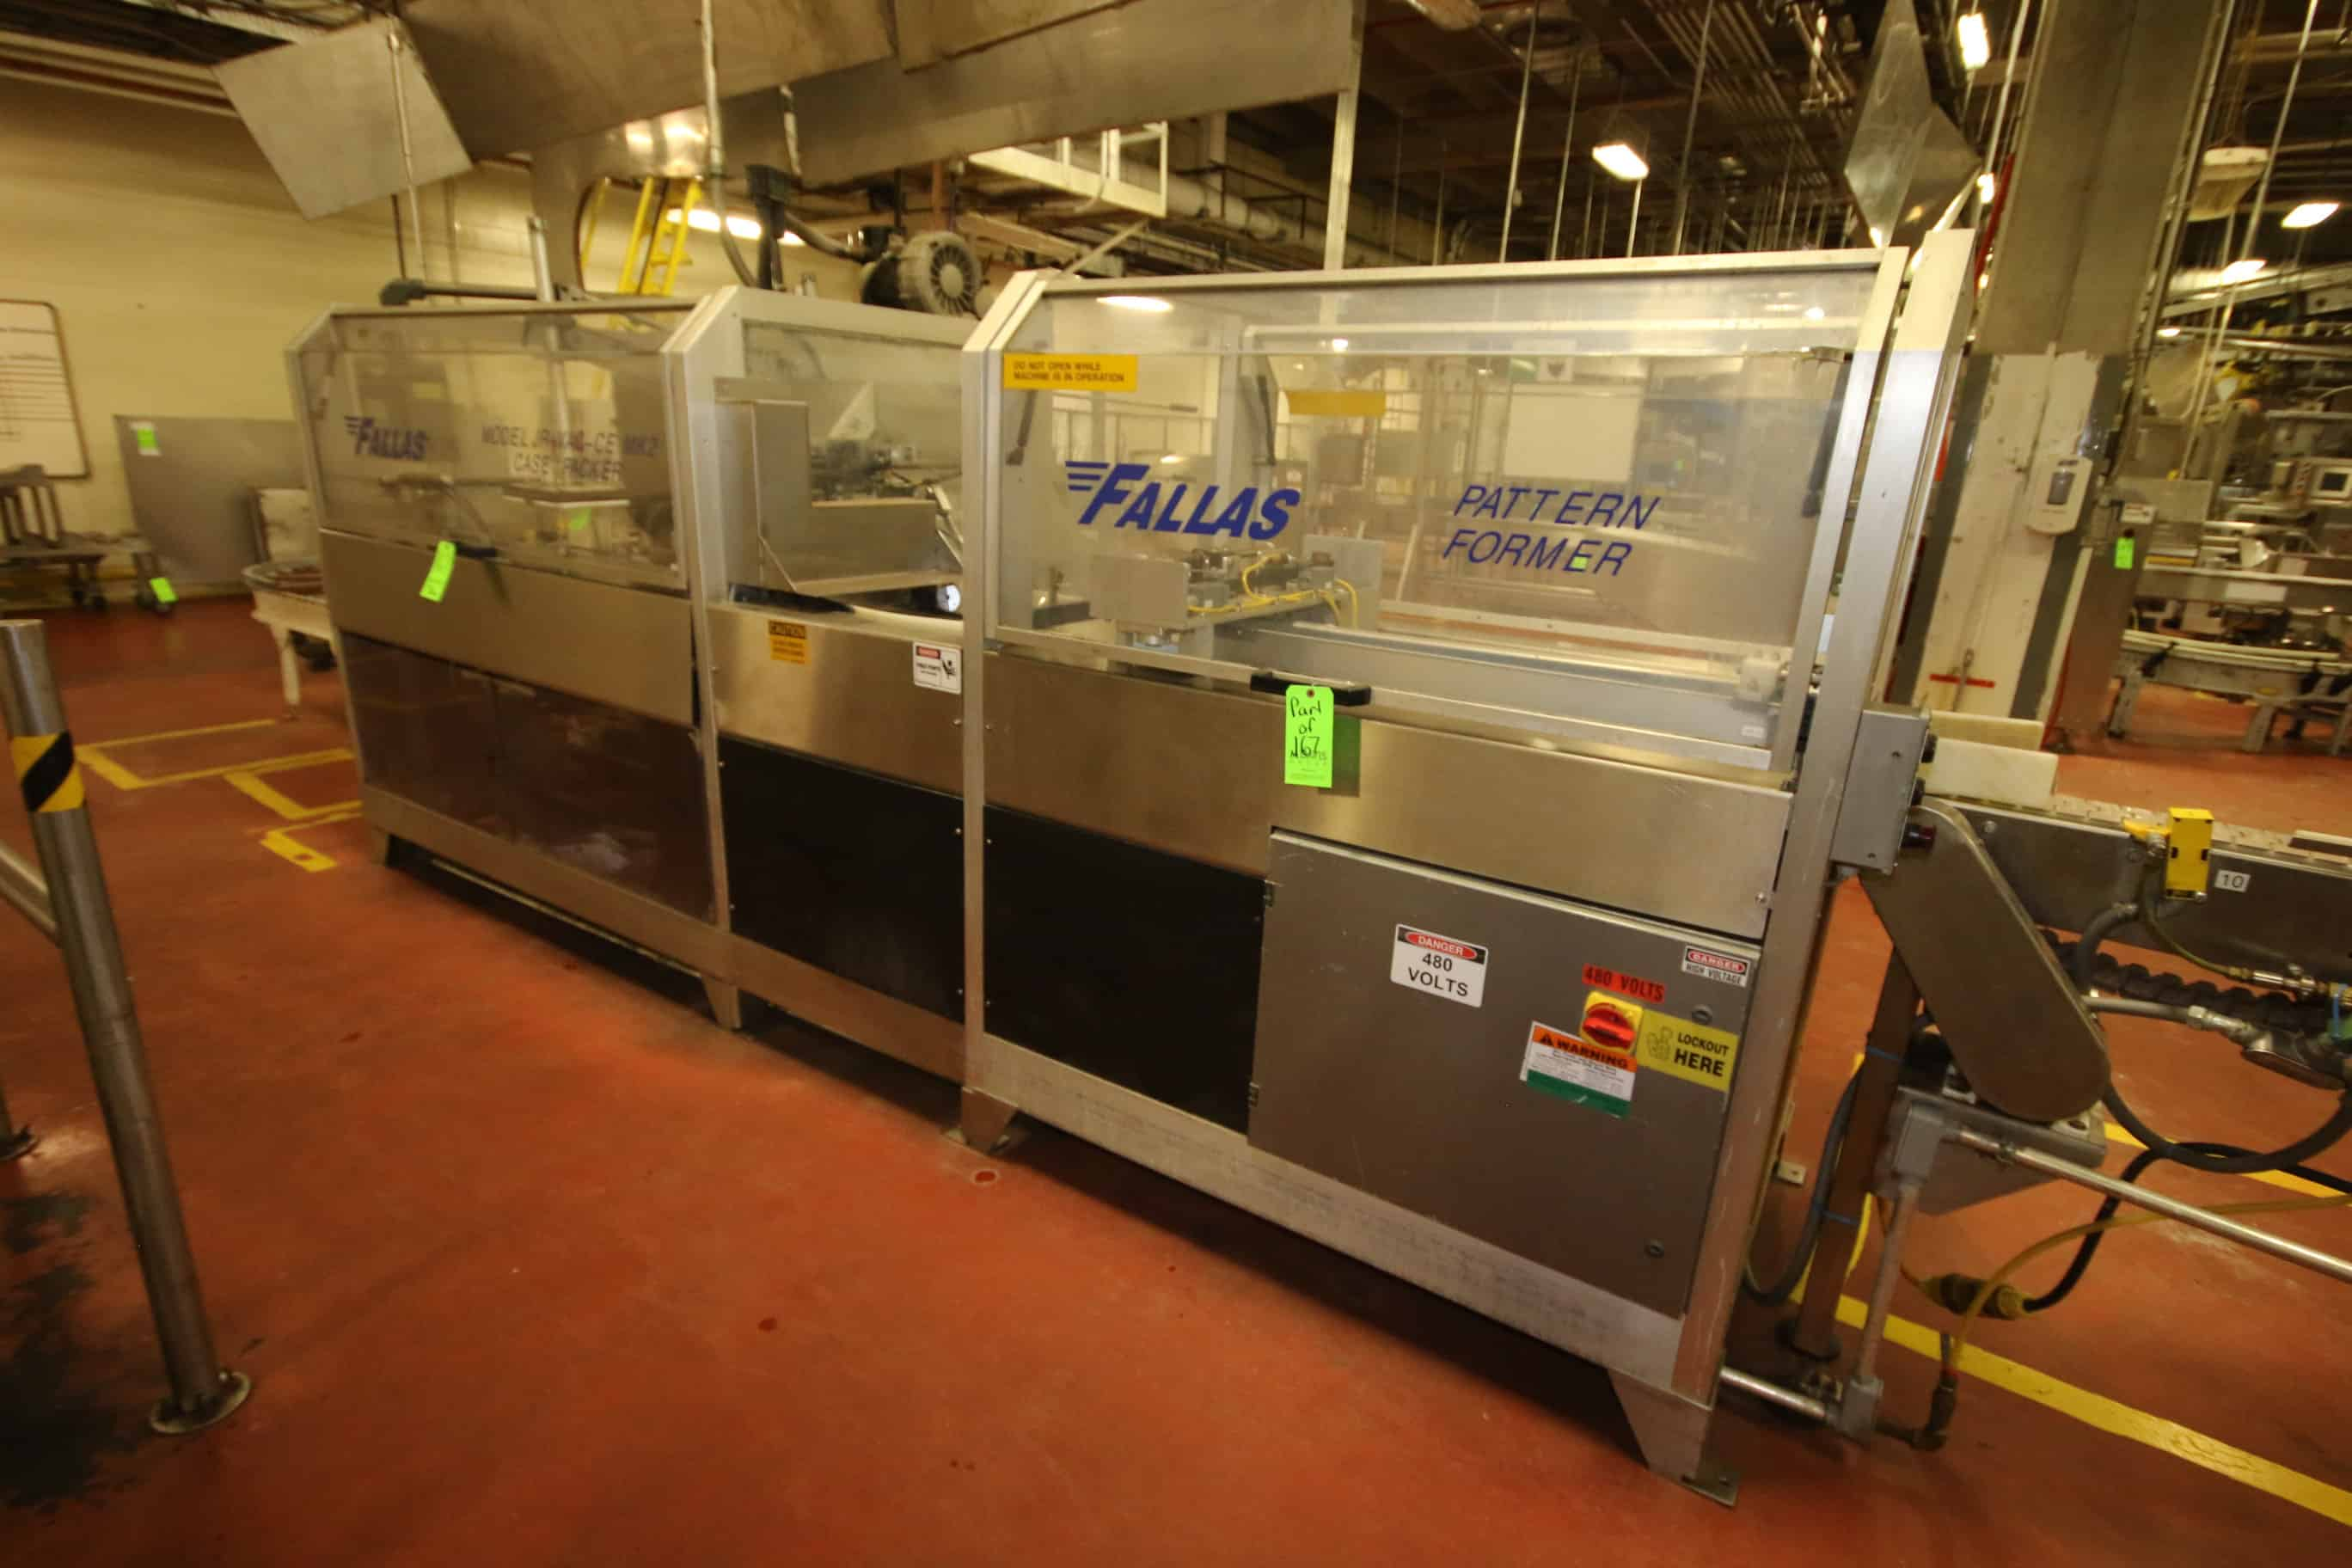 2000 Fallas Pattern Former/Case Packer, Model JR-VAC-CE, S/N JR061197-04 with (2) Allen Bradley SLC 5/04 PLC Controls, Allen Bradley PowerFlex VFD, Allen Bradley PanelView 550 Touchpad Display and SEW Drives